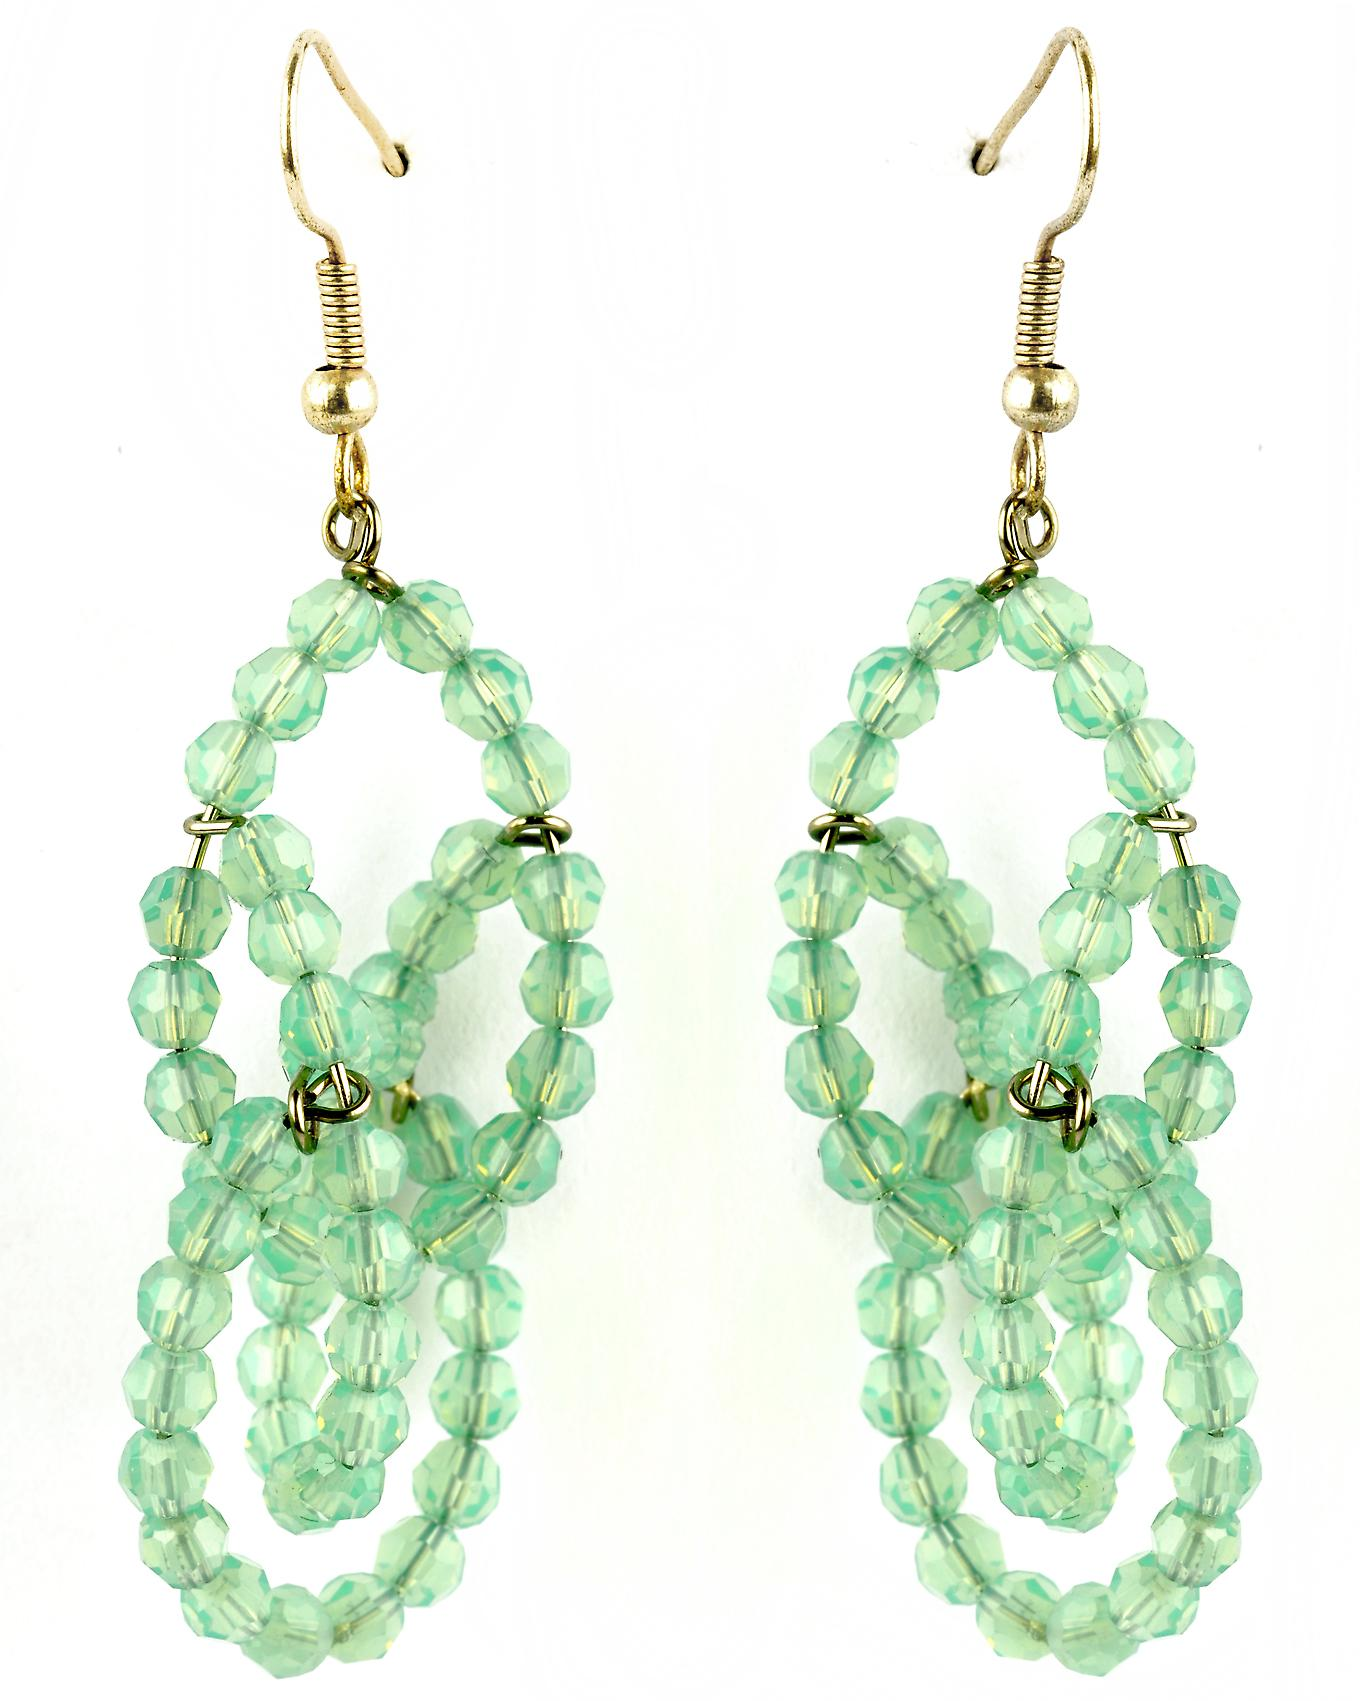 Waooh - Fashion Jewellery - WJ0744 - D'Oreille earrings with Swarovski Strass Green Transparent